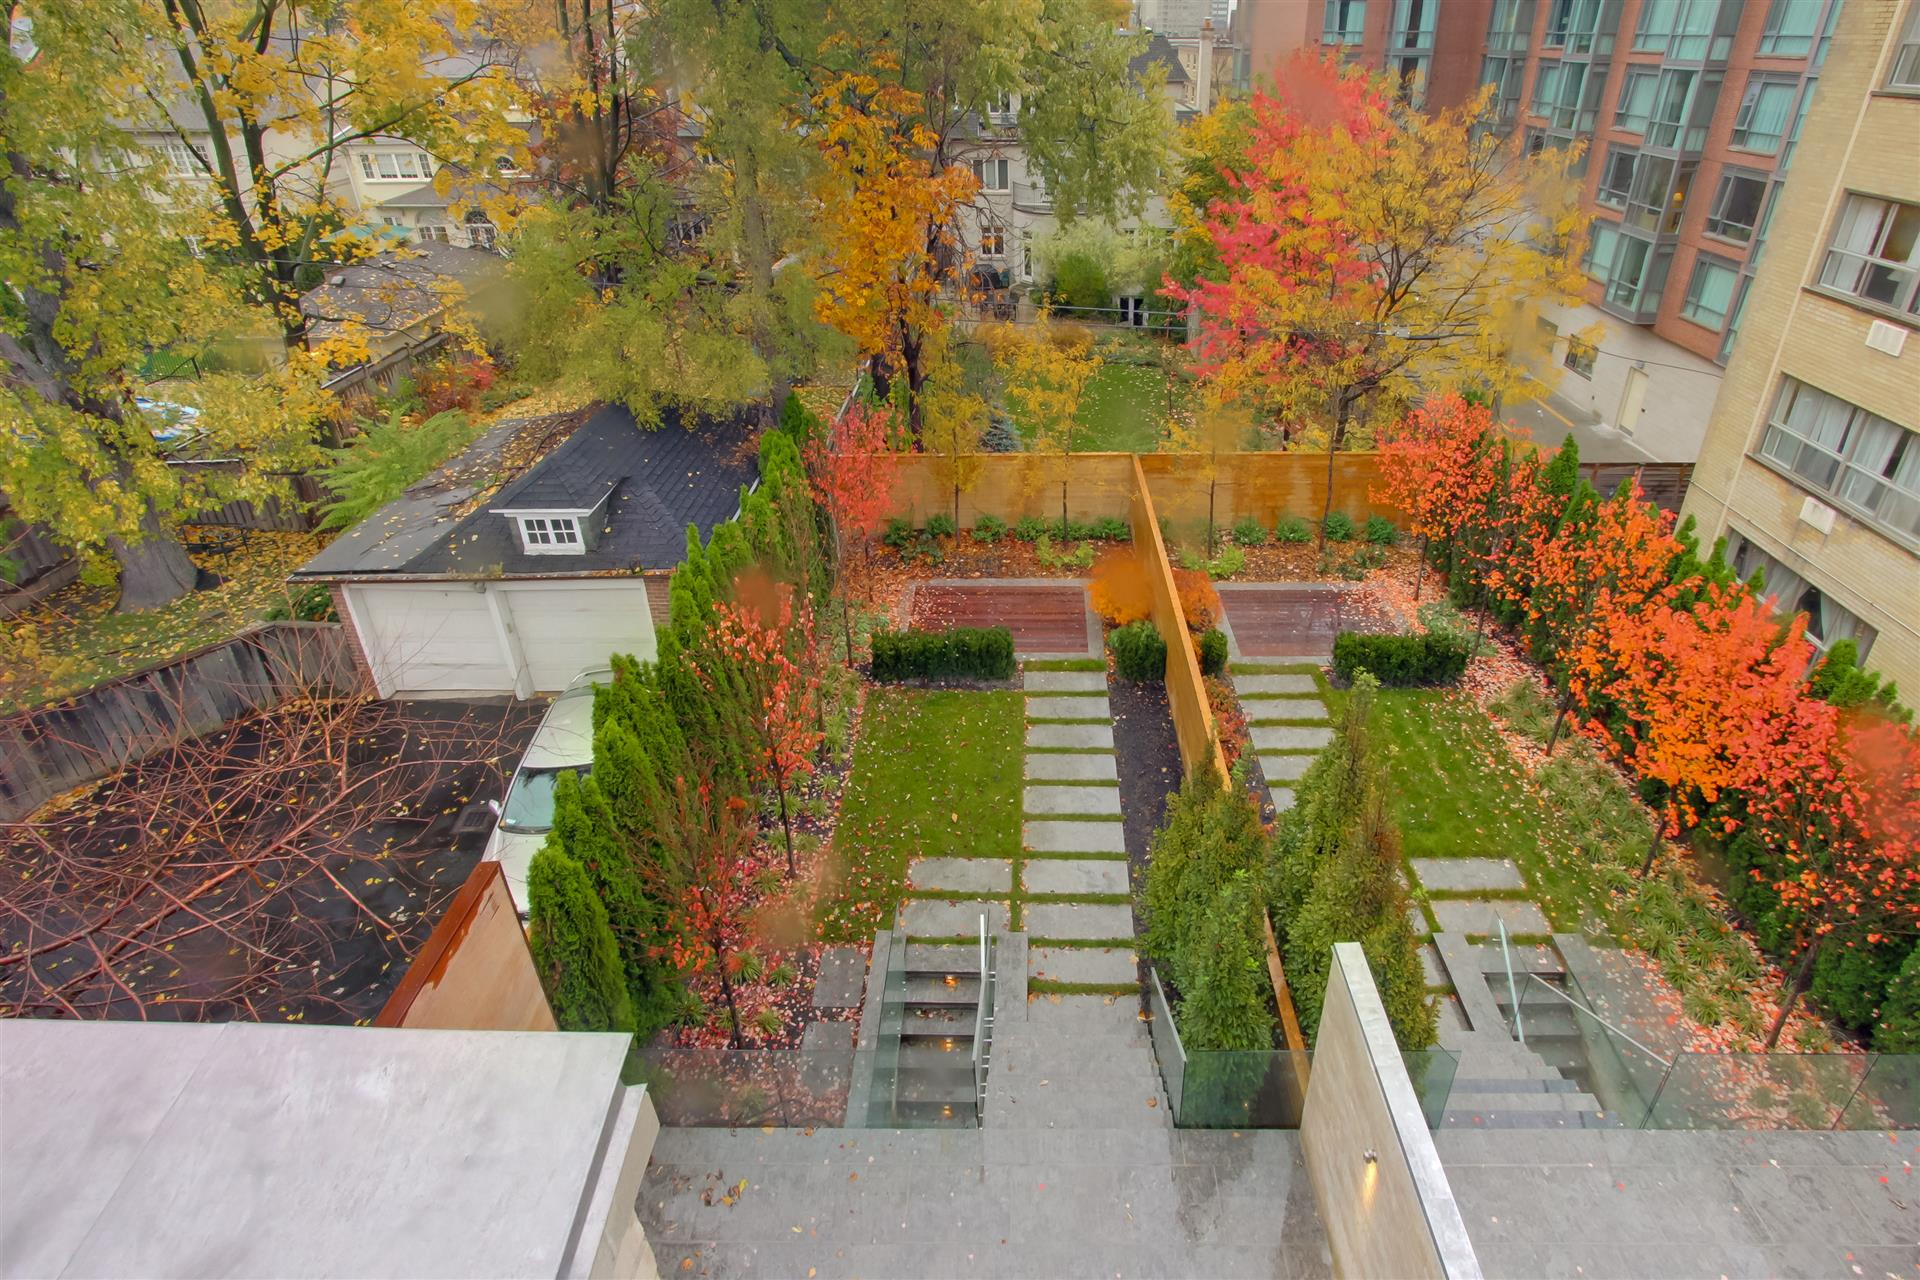 stepping stones, cedar hedge, yews, ipe decking, toronto, forest hill, maple trees, fall, leaves, stonework, parkscape